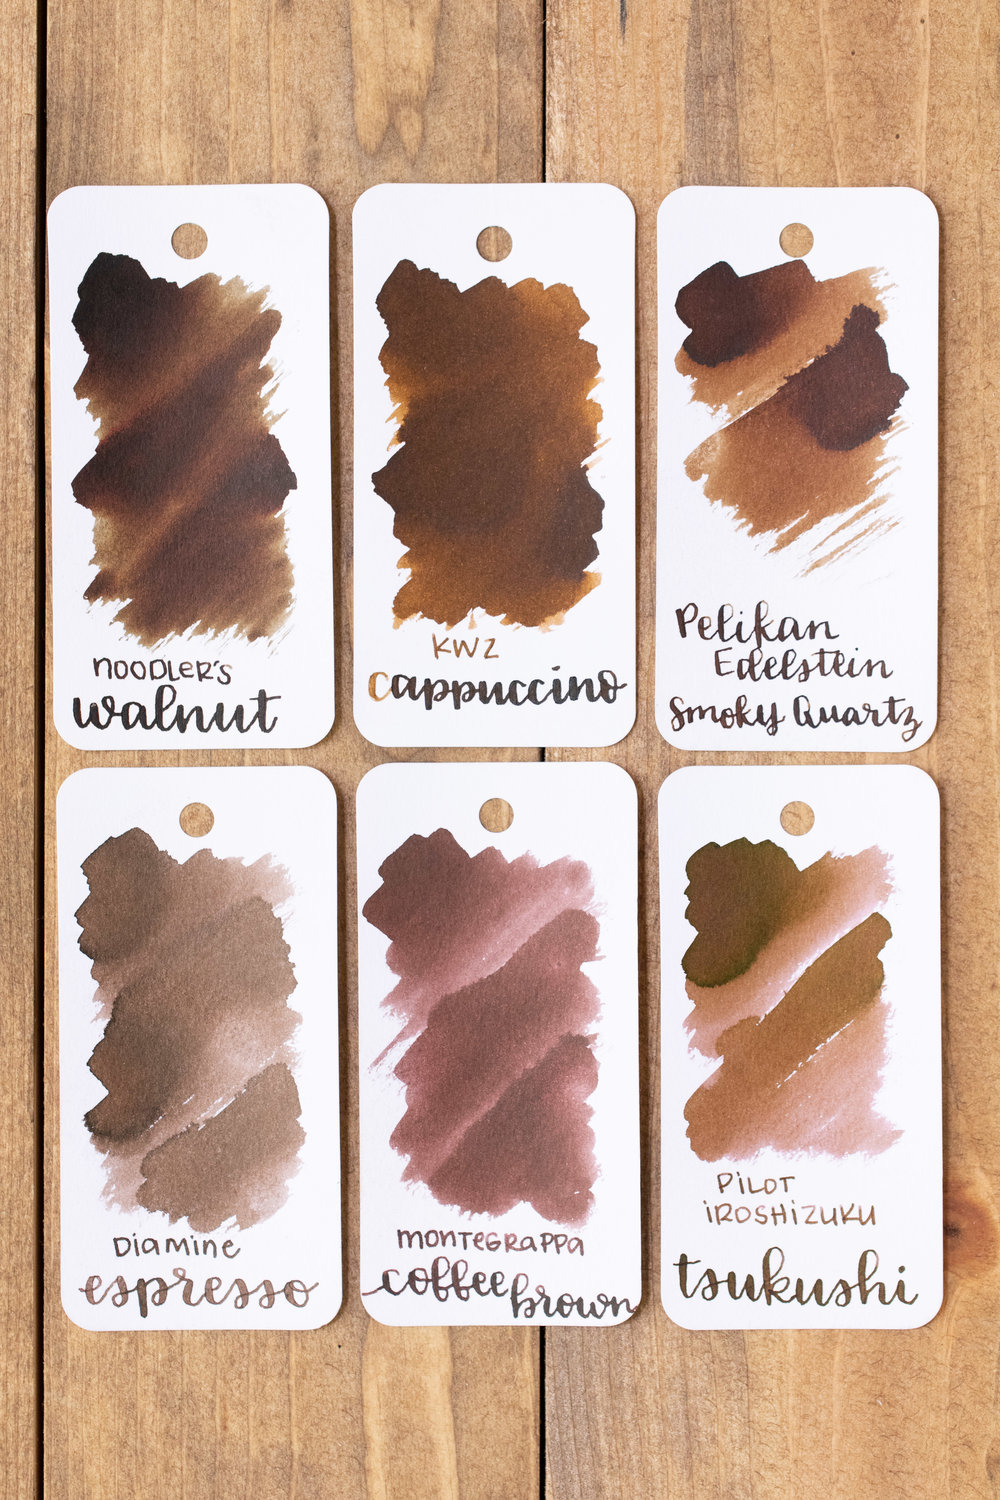 Similar inks: - Noodler's Walnut is a cooler and just a bit darker than Cappuccino.